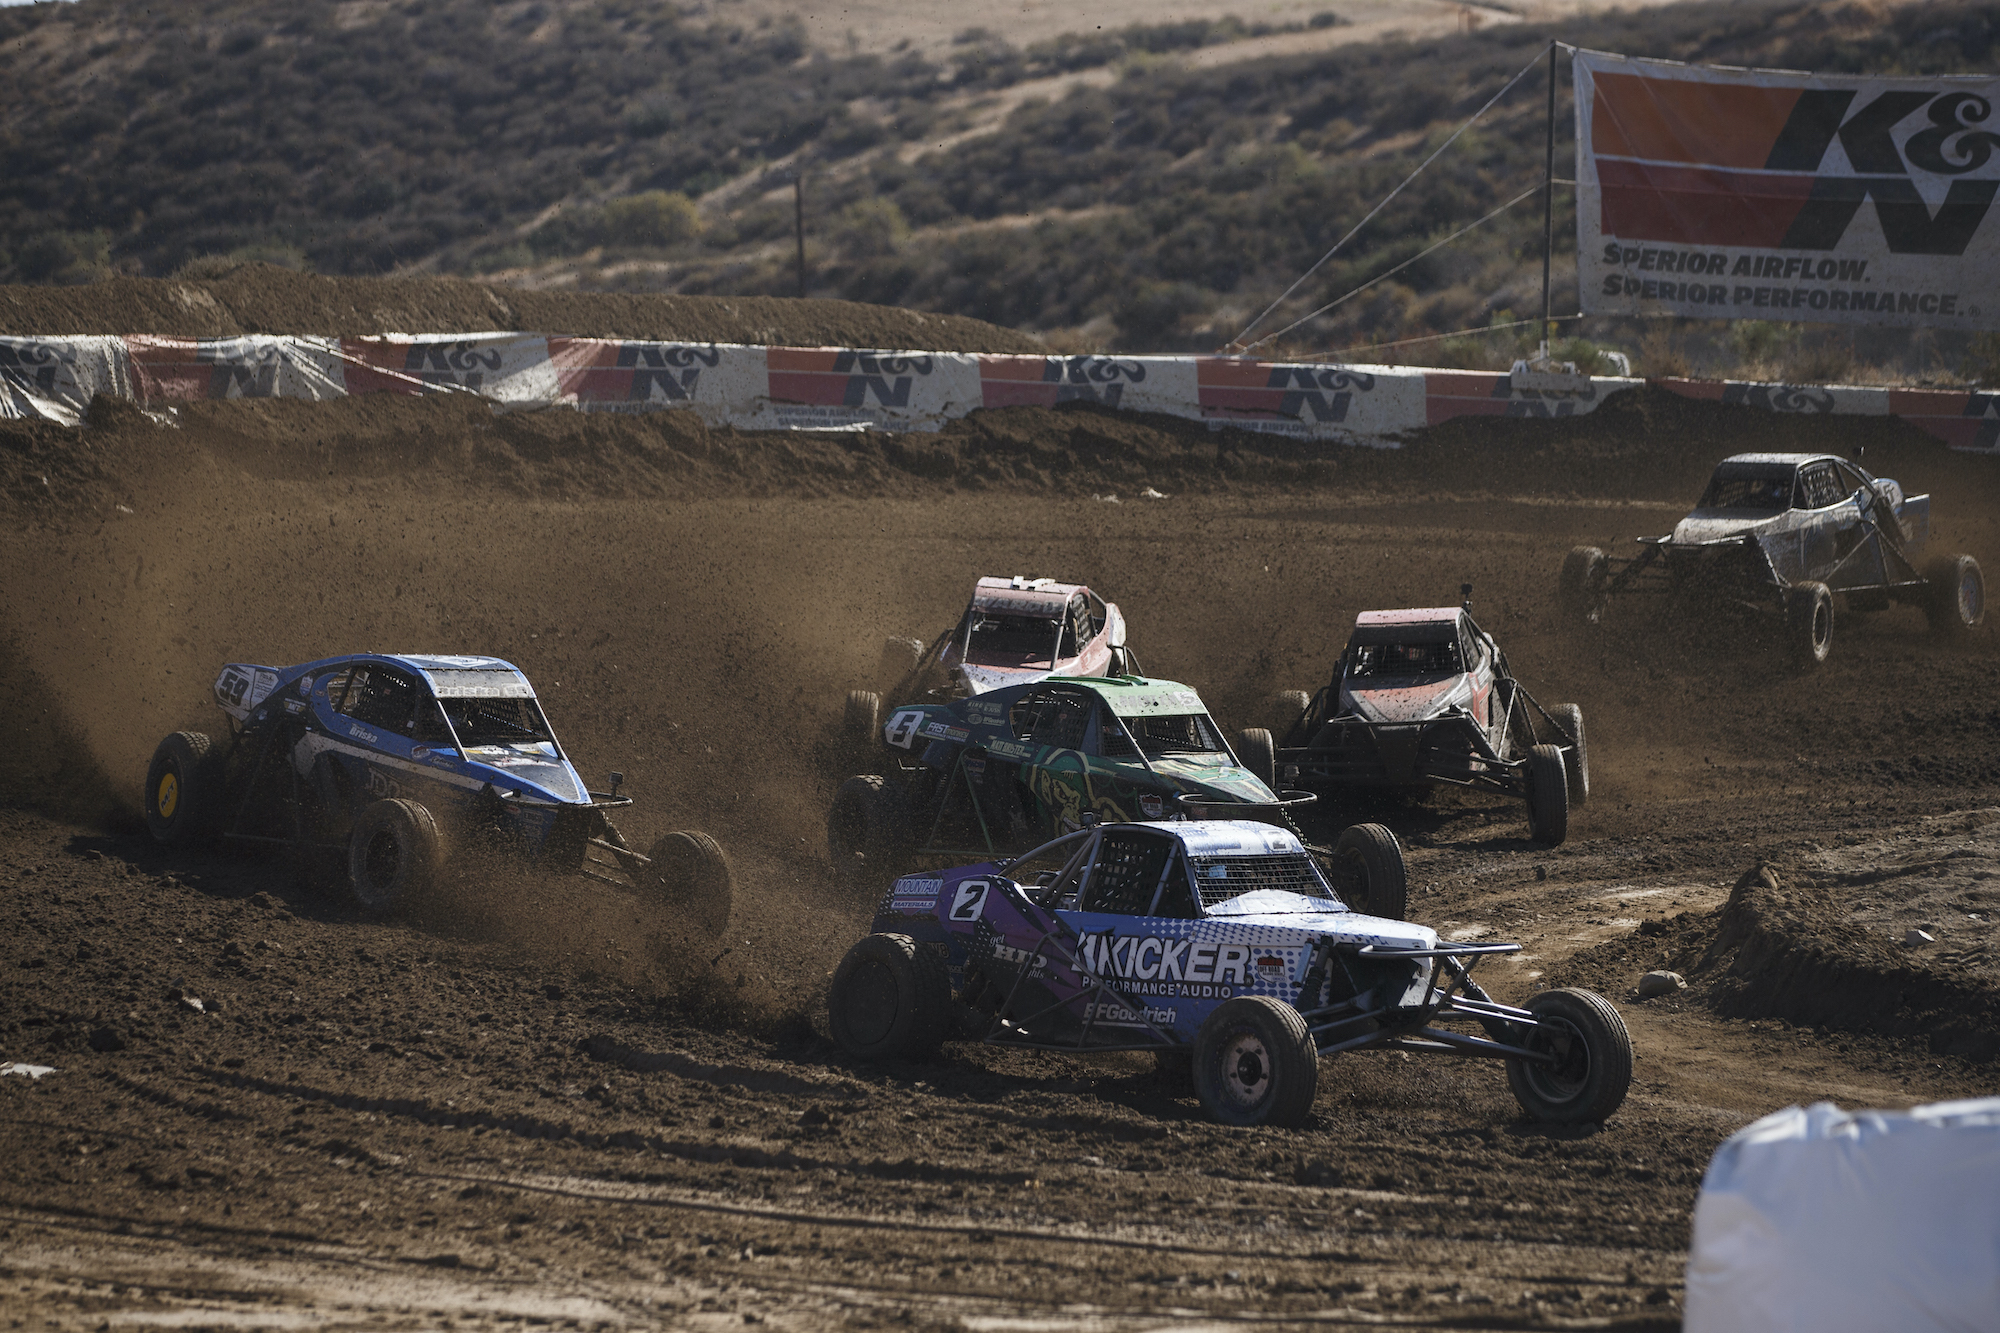 200722 Pro Buggy will feature some of the most competitive action of the Lucas Oil Off Road Racing Series.